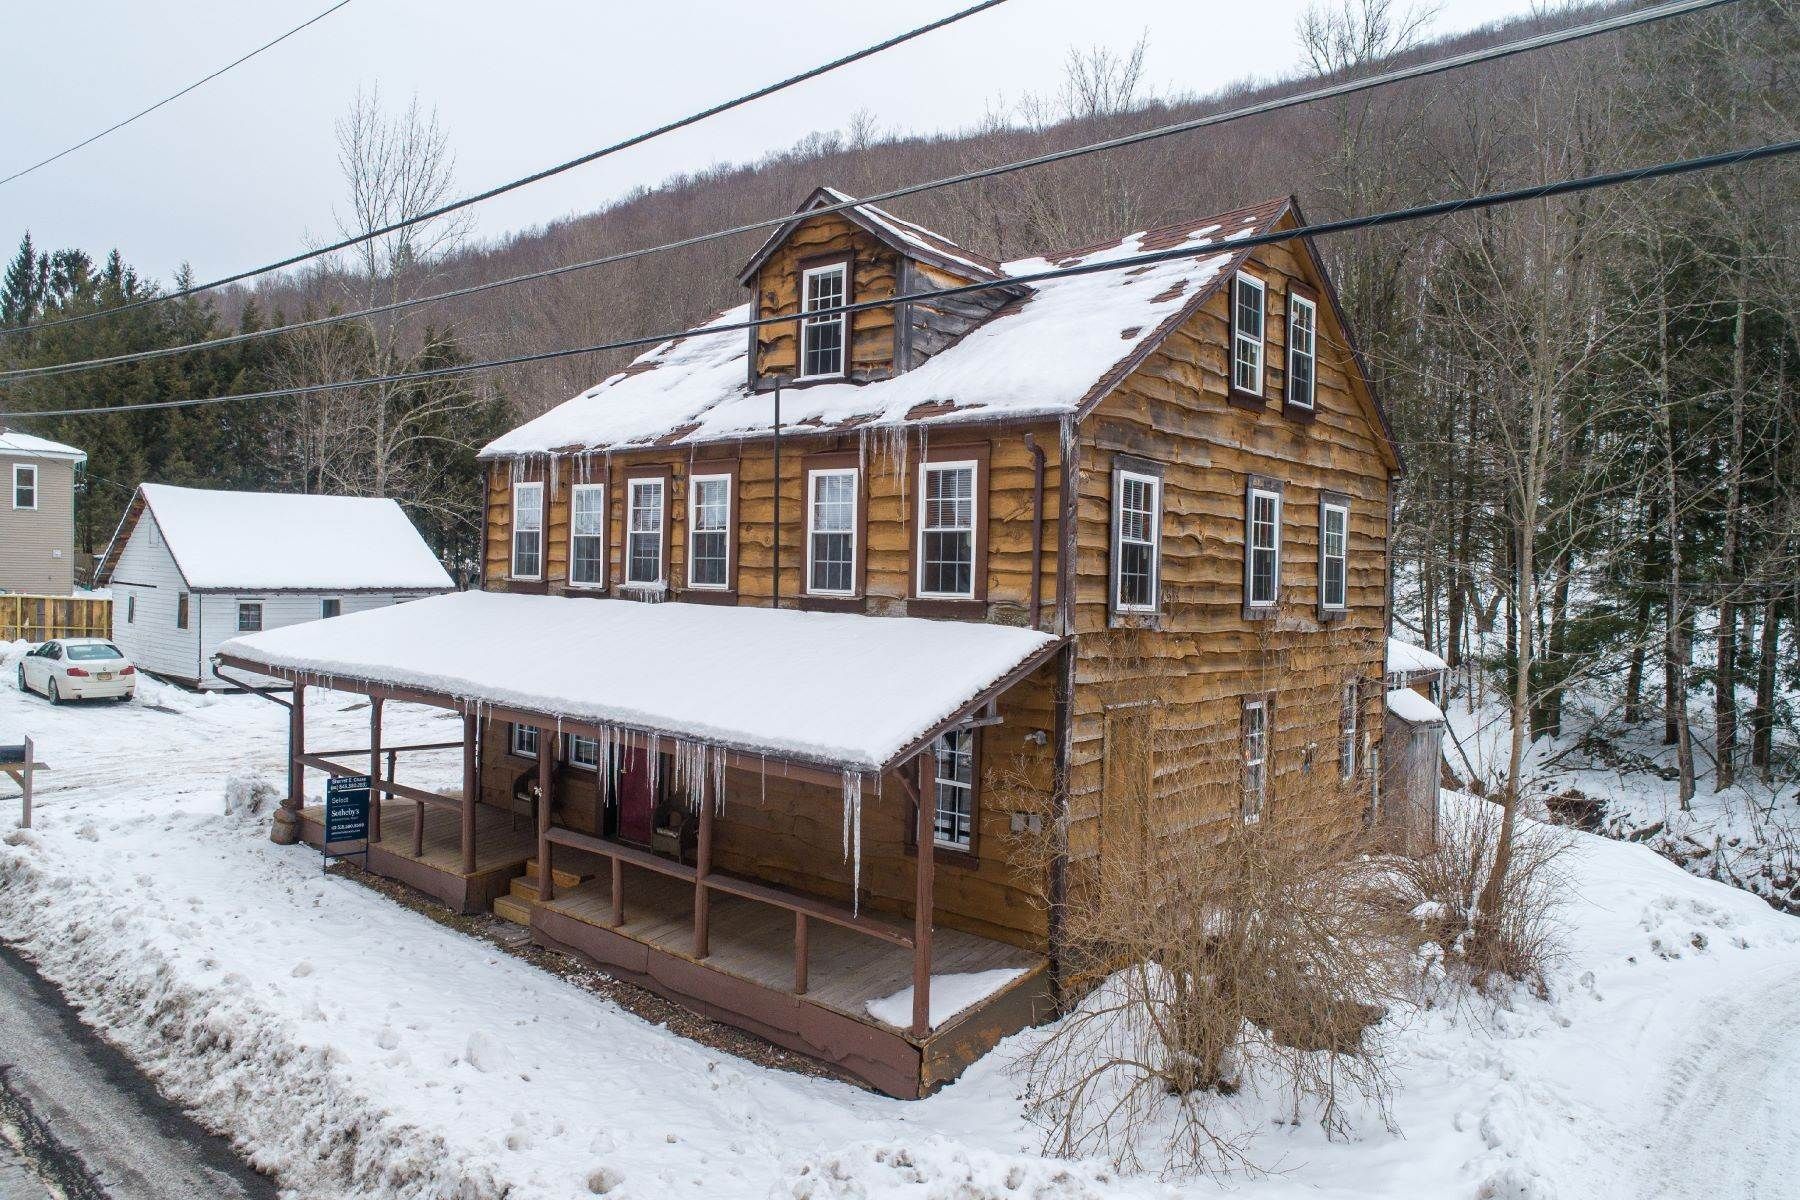 Property for Sale at Mountain Brook Inn 540 State Route 42, Bushnellsville Shandaken, New York 12480 United States